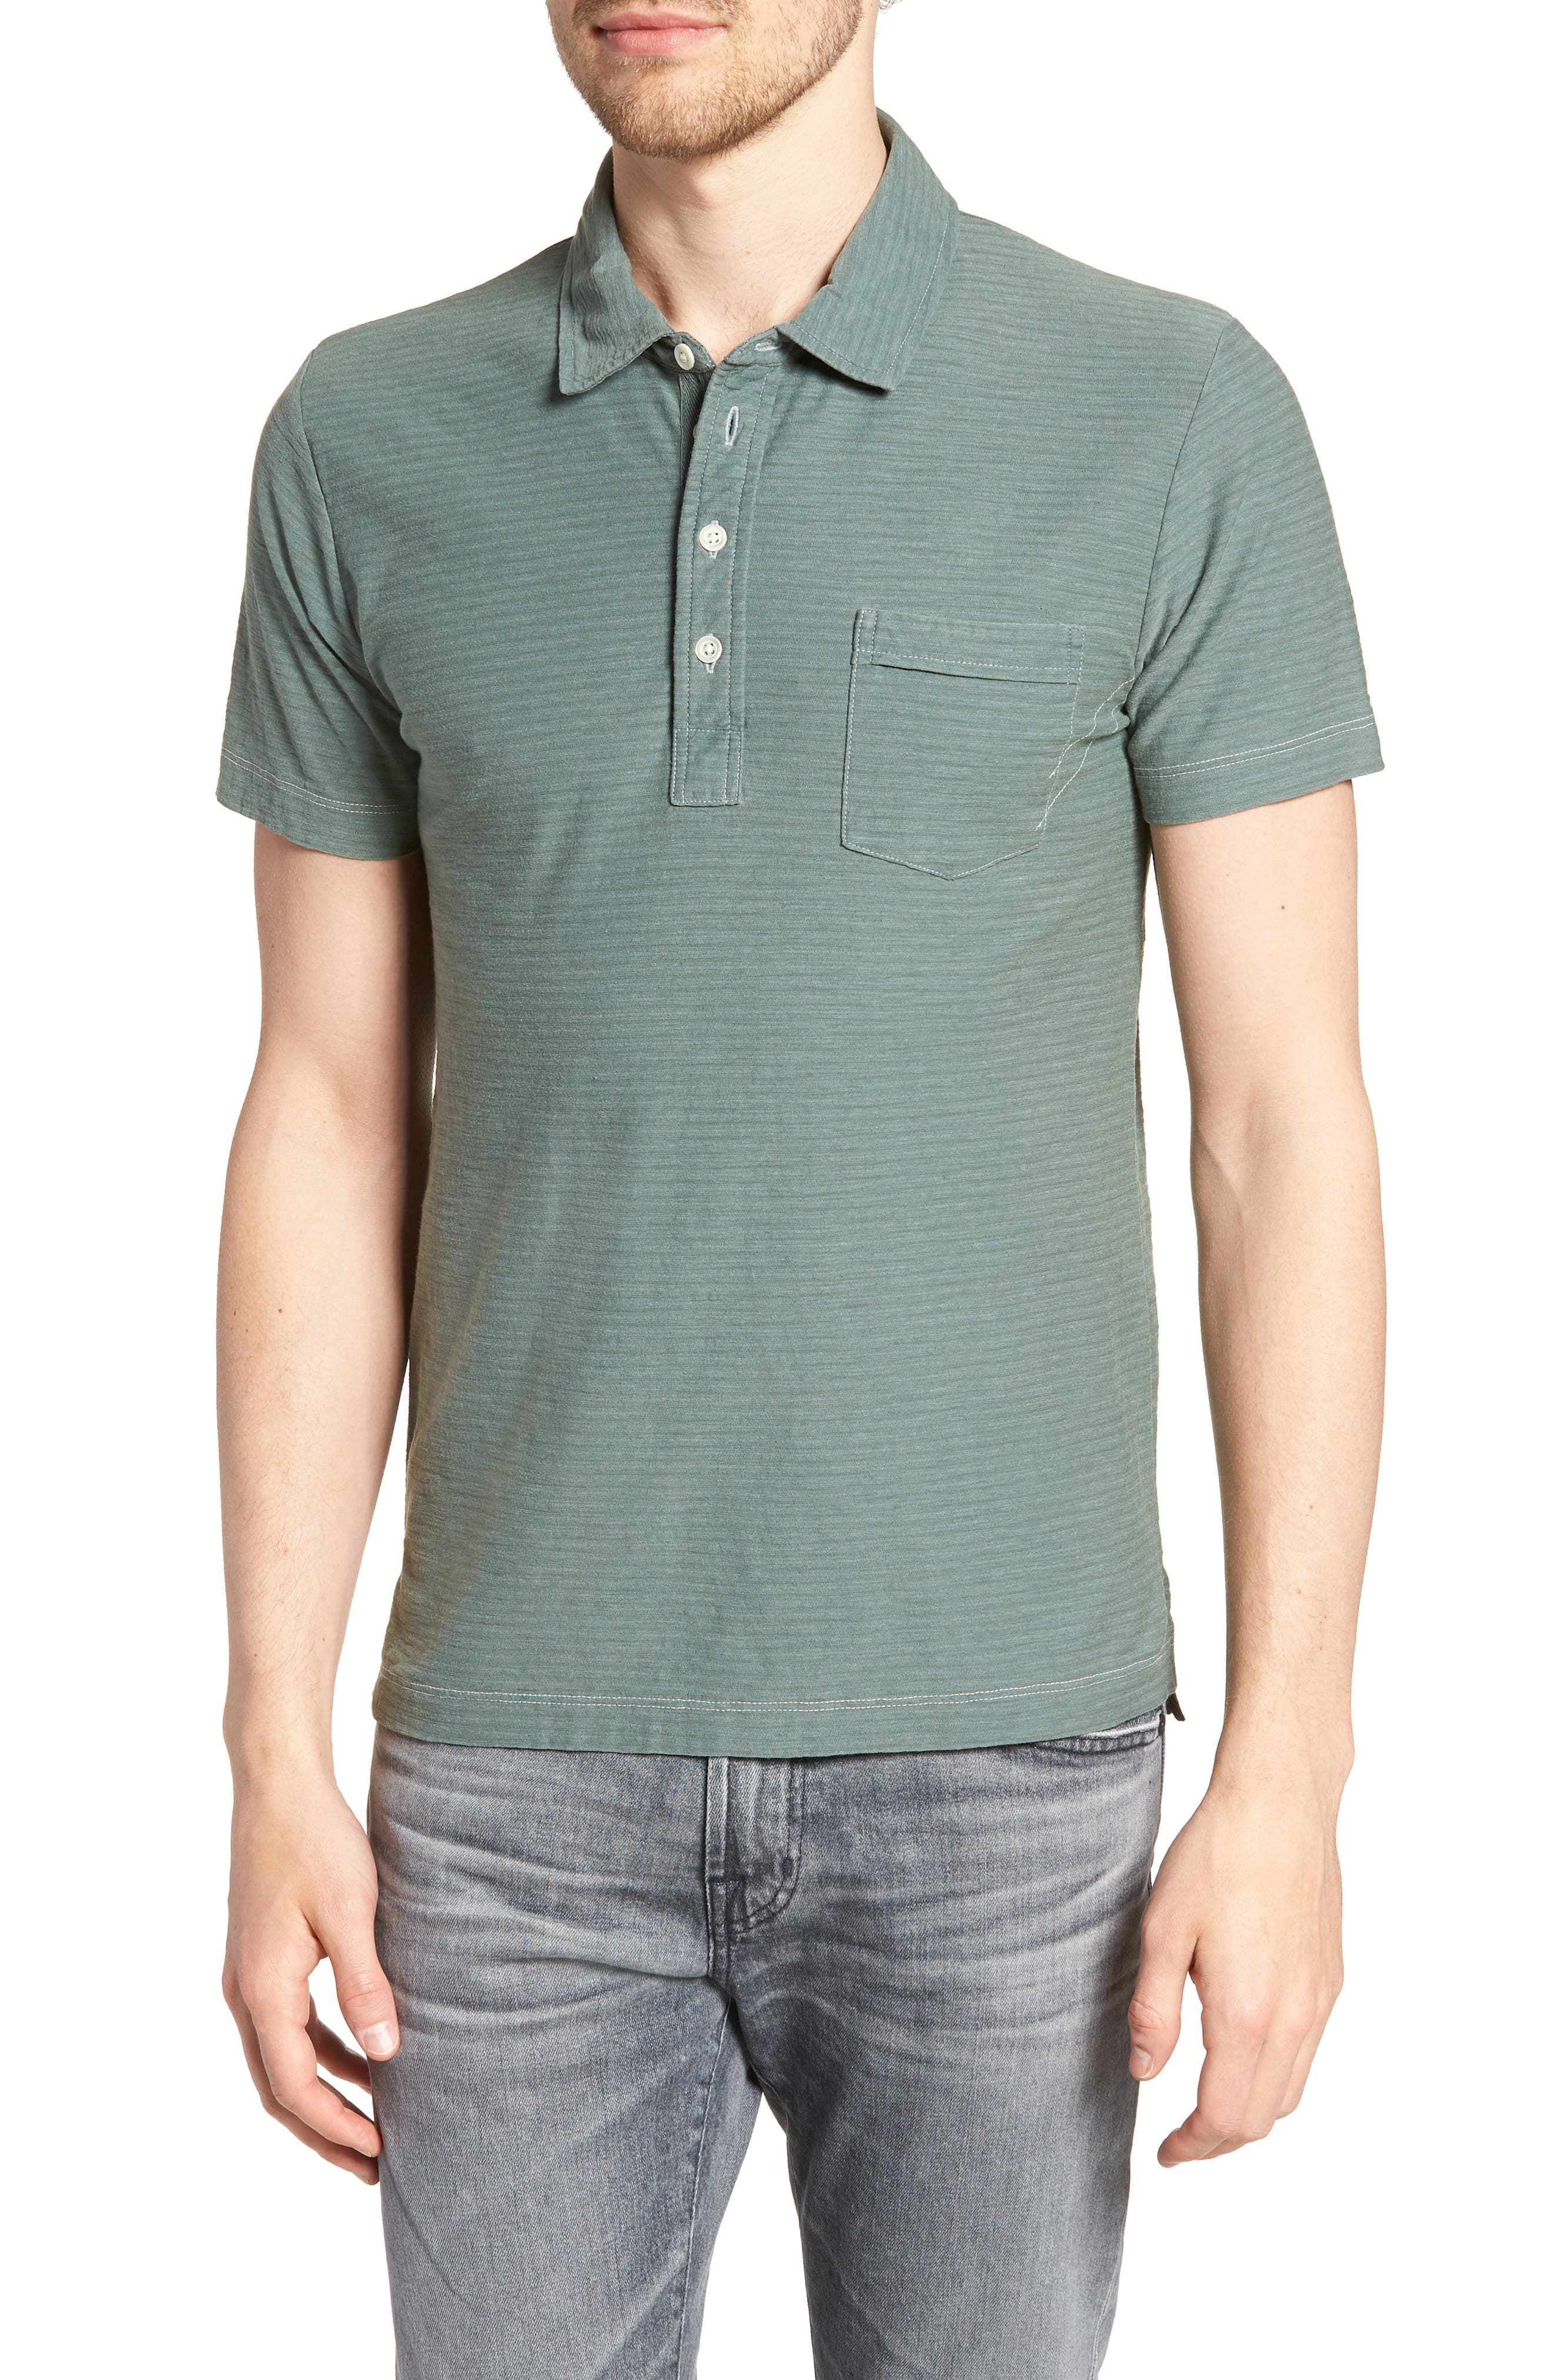 Pensacola Cotton Blend Polo Shirt,                         Main,                         color, 387